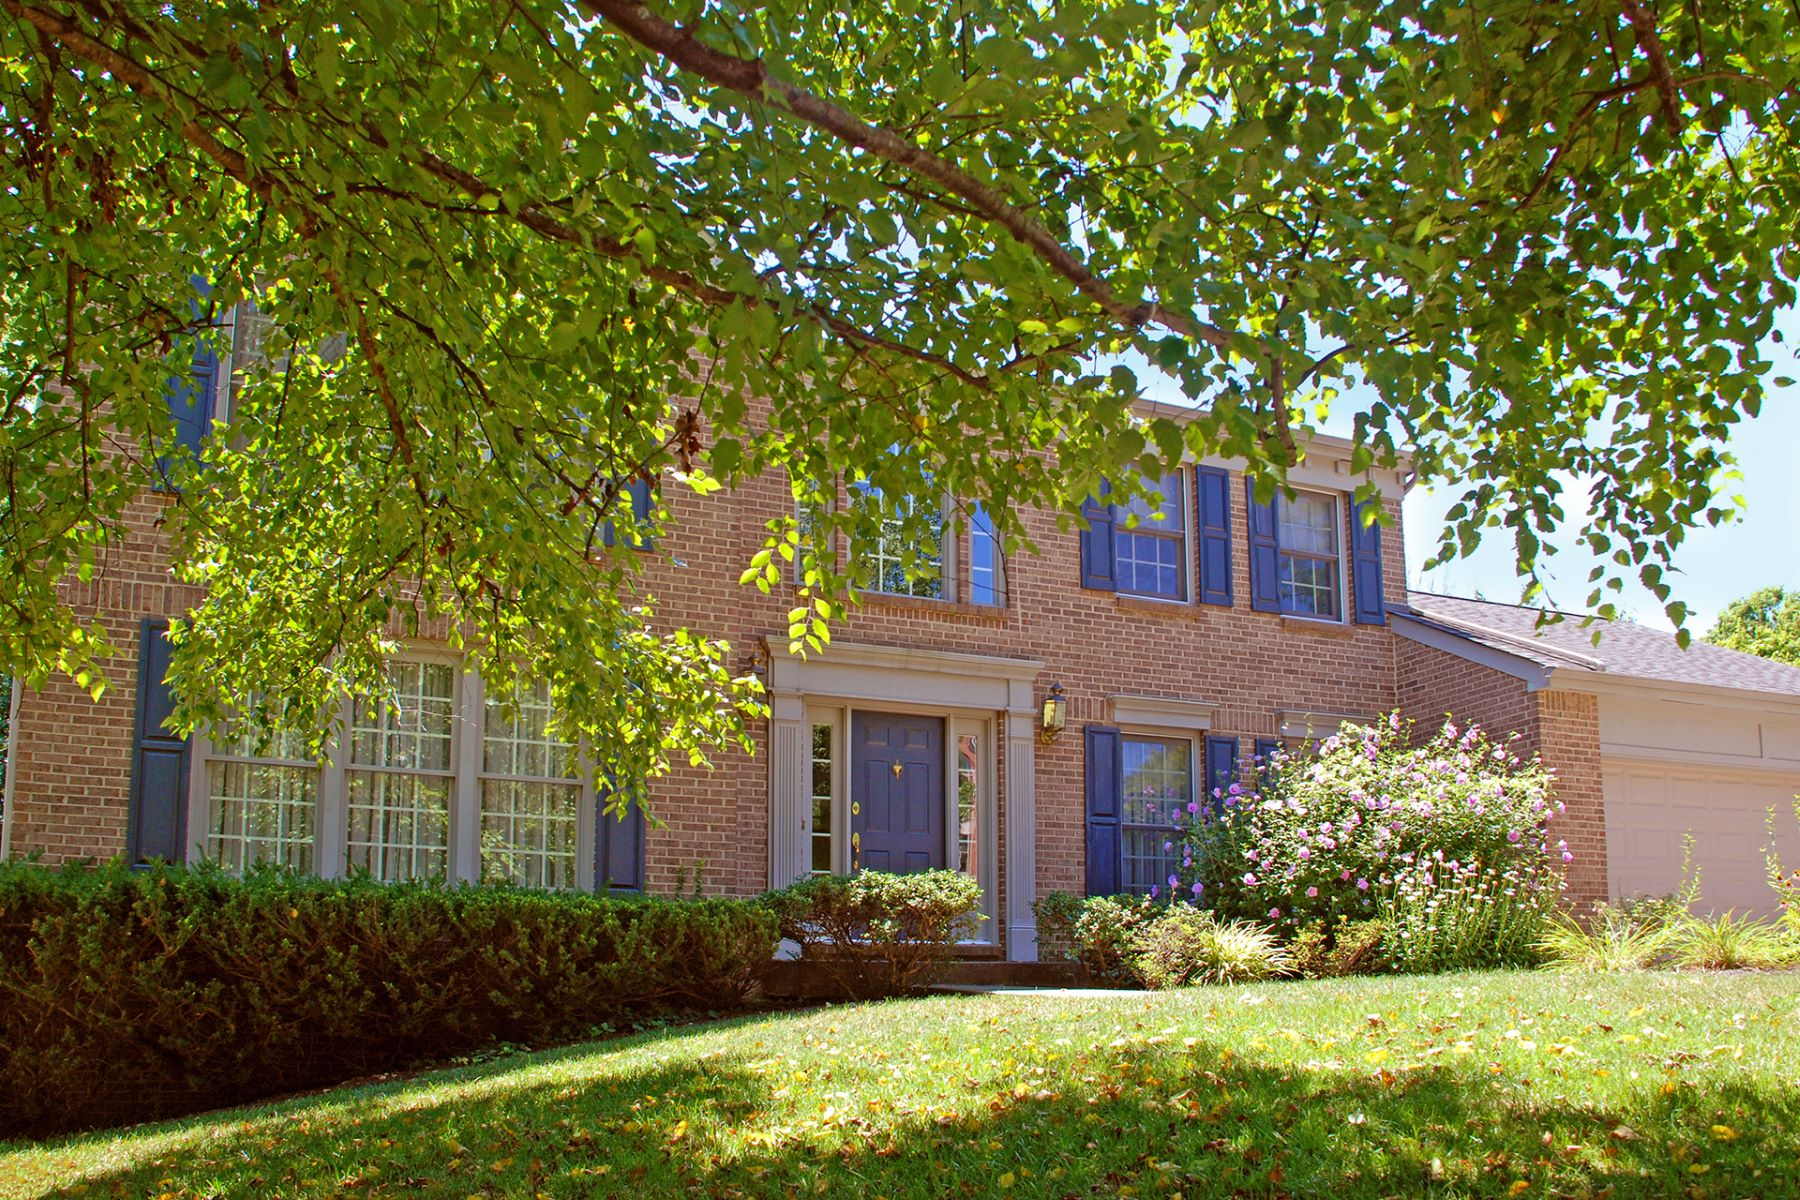 Single Family Home for Sale at Charming Home Charming Neighborhood 780 Twilight Drive Crescent Springs, Kentucky 41017 United States